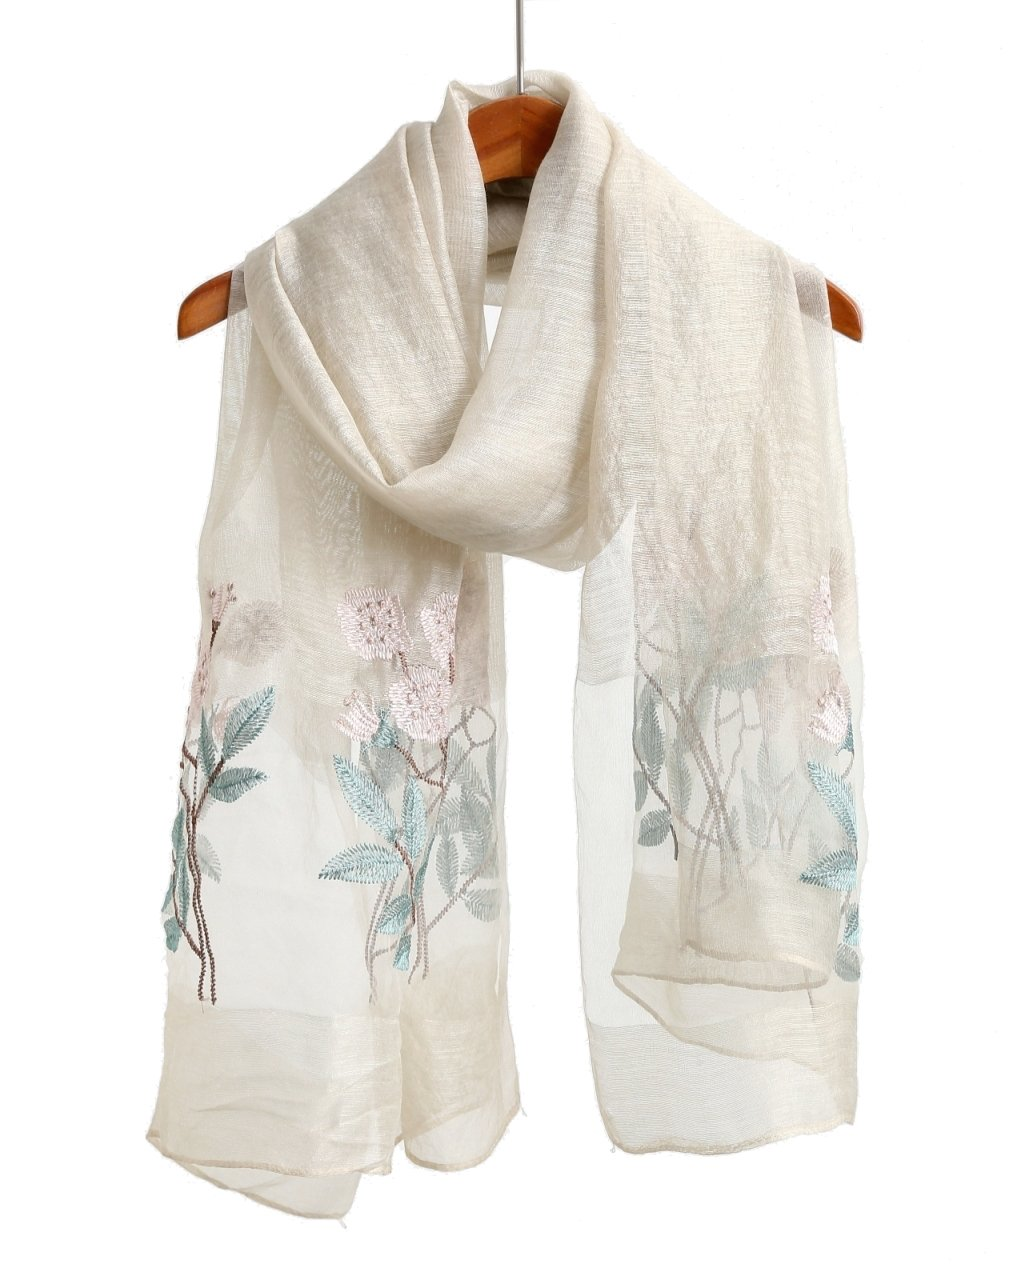 Light Beige Floral Winter Blanket Scarfs For Men And Women, Cashmere Like Pashmina Shawls And Wraps Scarves Solid color (bluee Tone)